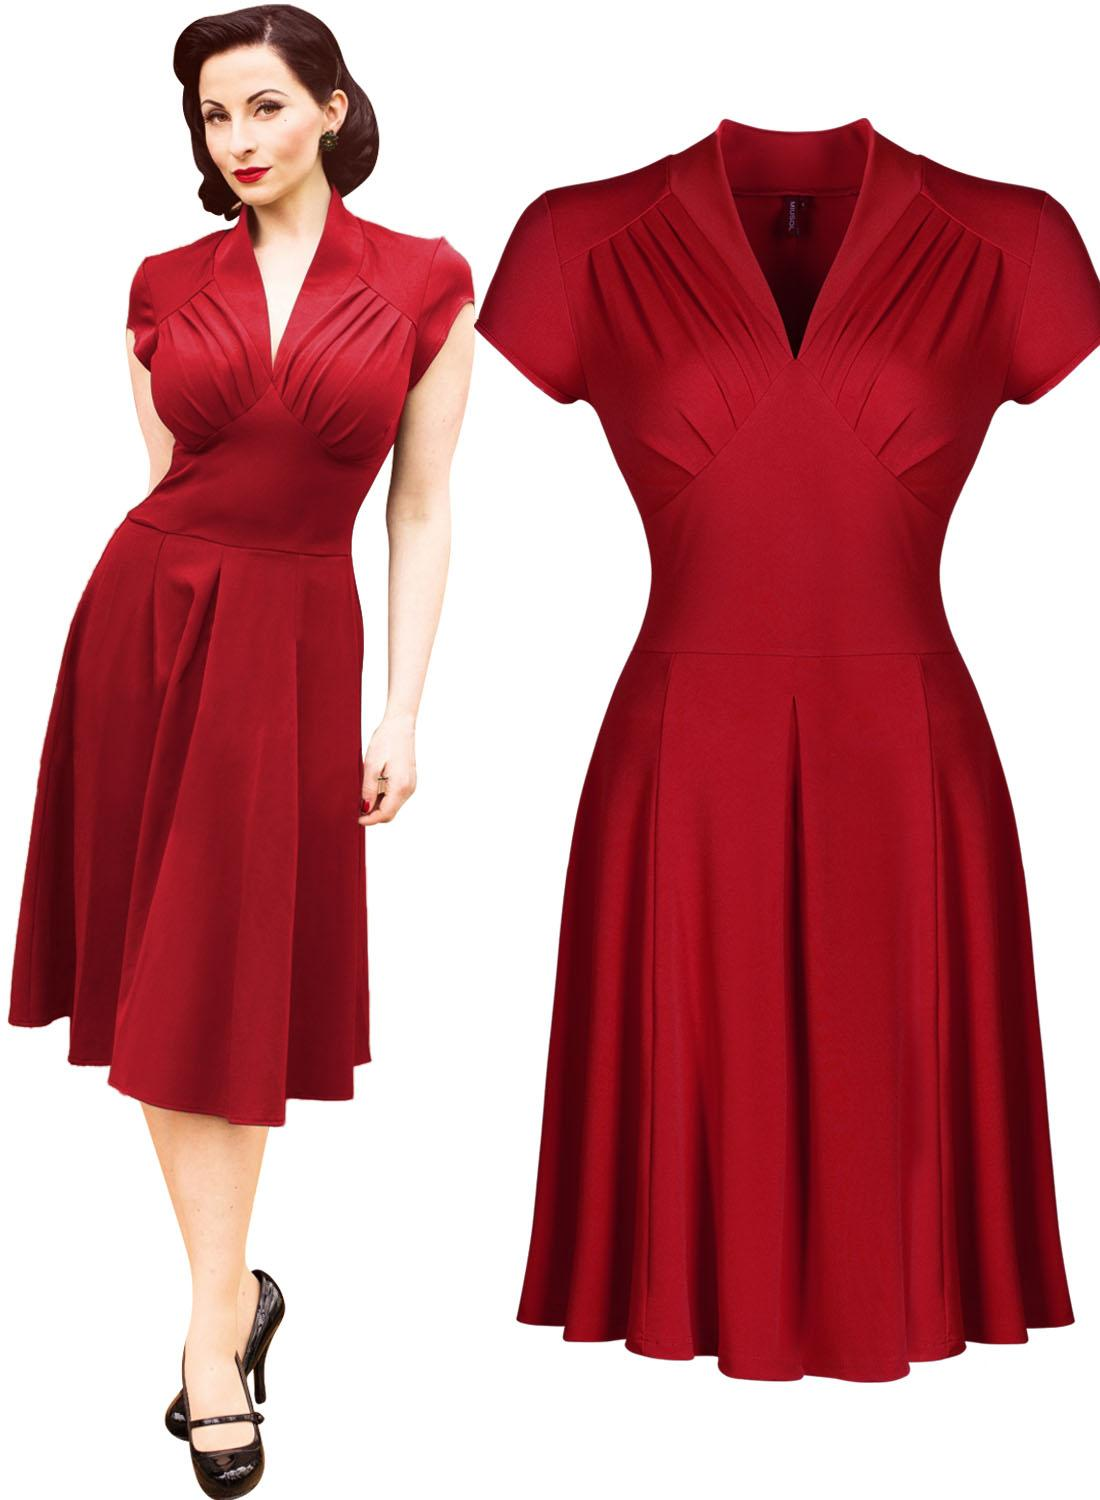 Retro Evening Dresses